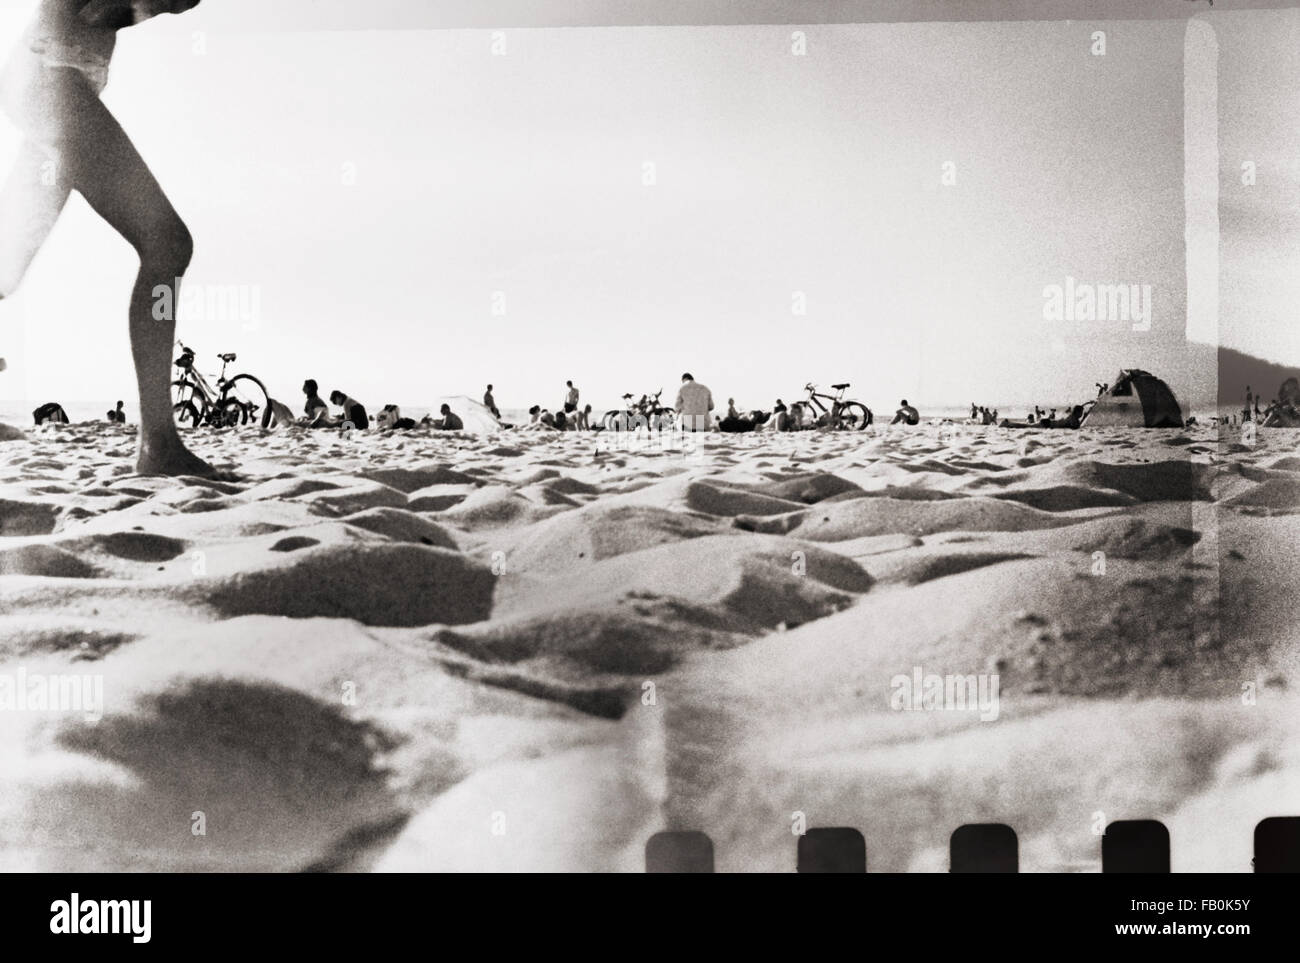 Retro film photo vacation snapshot sunny day on the beach grain blur light leaks added as vintage effect